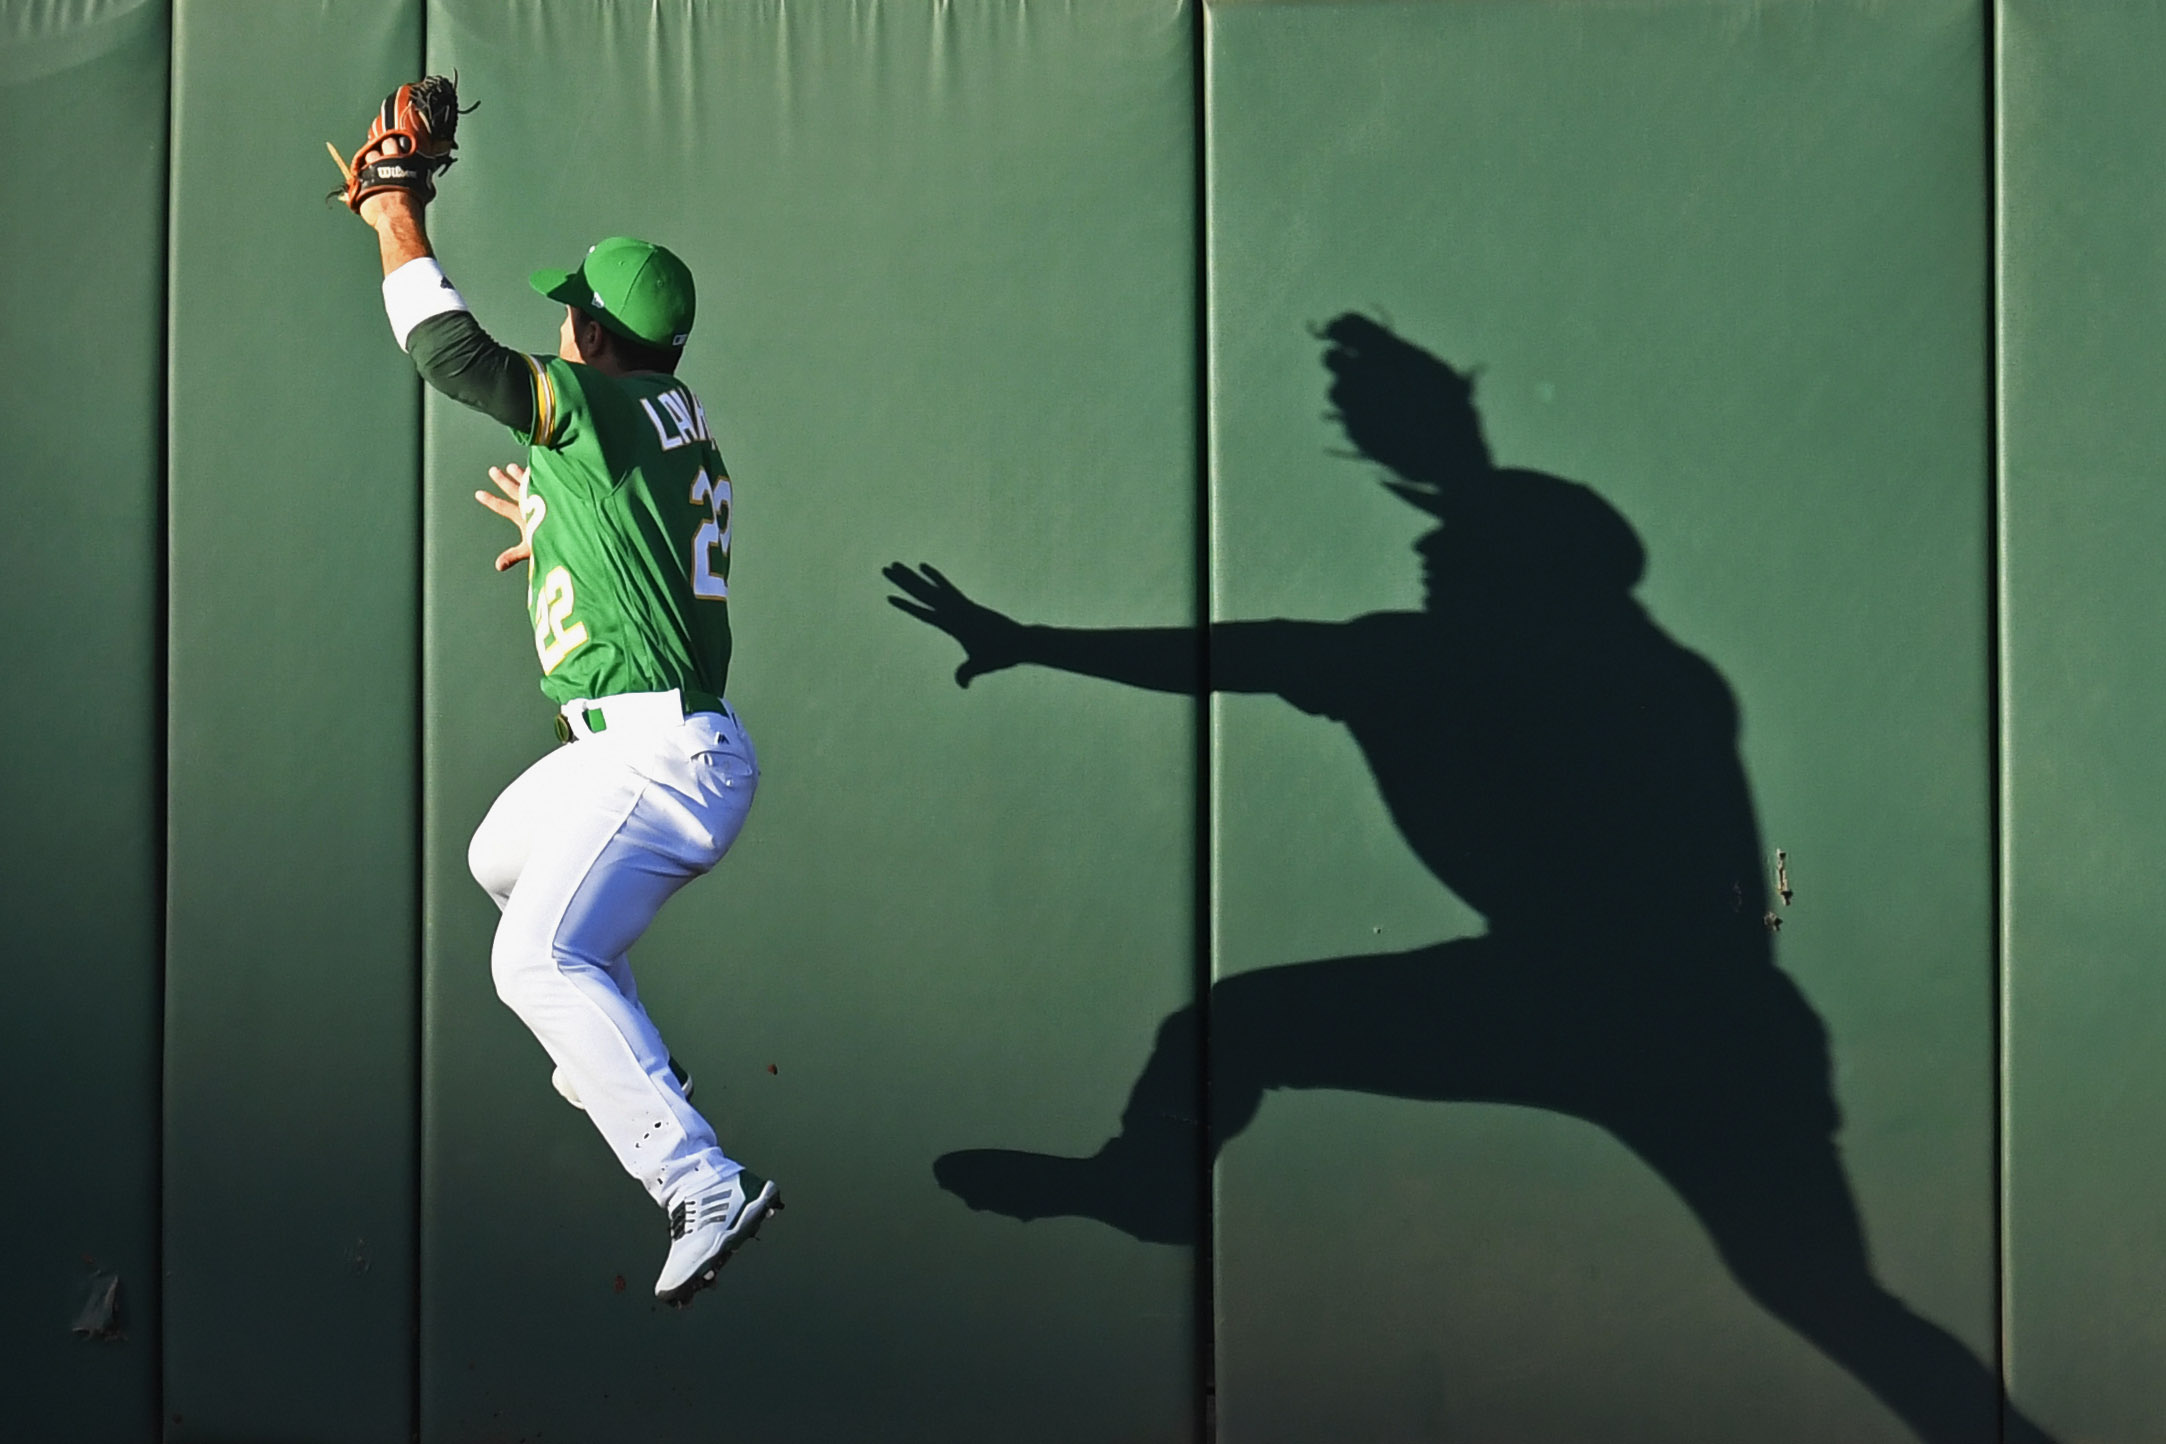 A s Ramon Laureano makes insane throw in game vs Angels Oakland Athletics  Ramon Laureano  22  reaches to catch a fly ball hit by  Detroit Tigers  Nicholas Castellanos  9  in the first inning of their MLB  game at